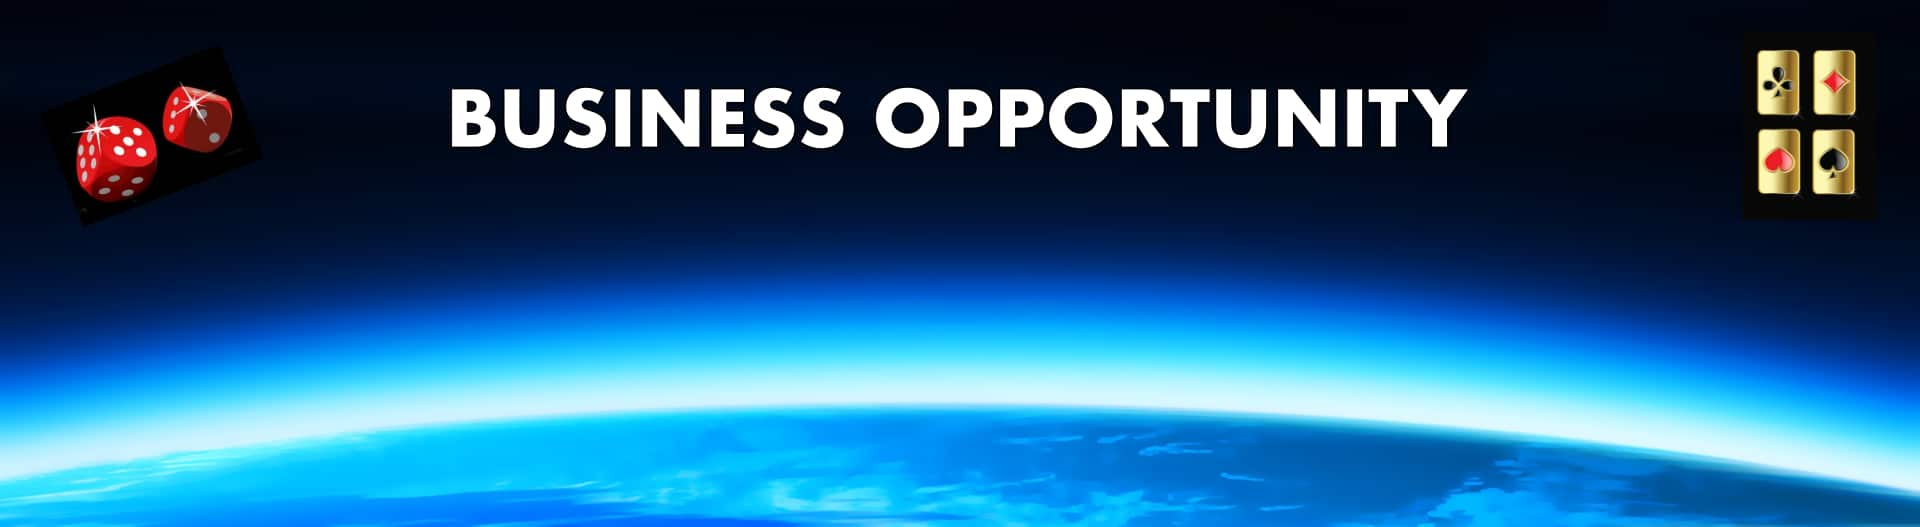 Online business opportunity banner